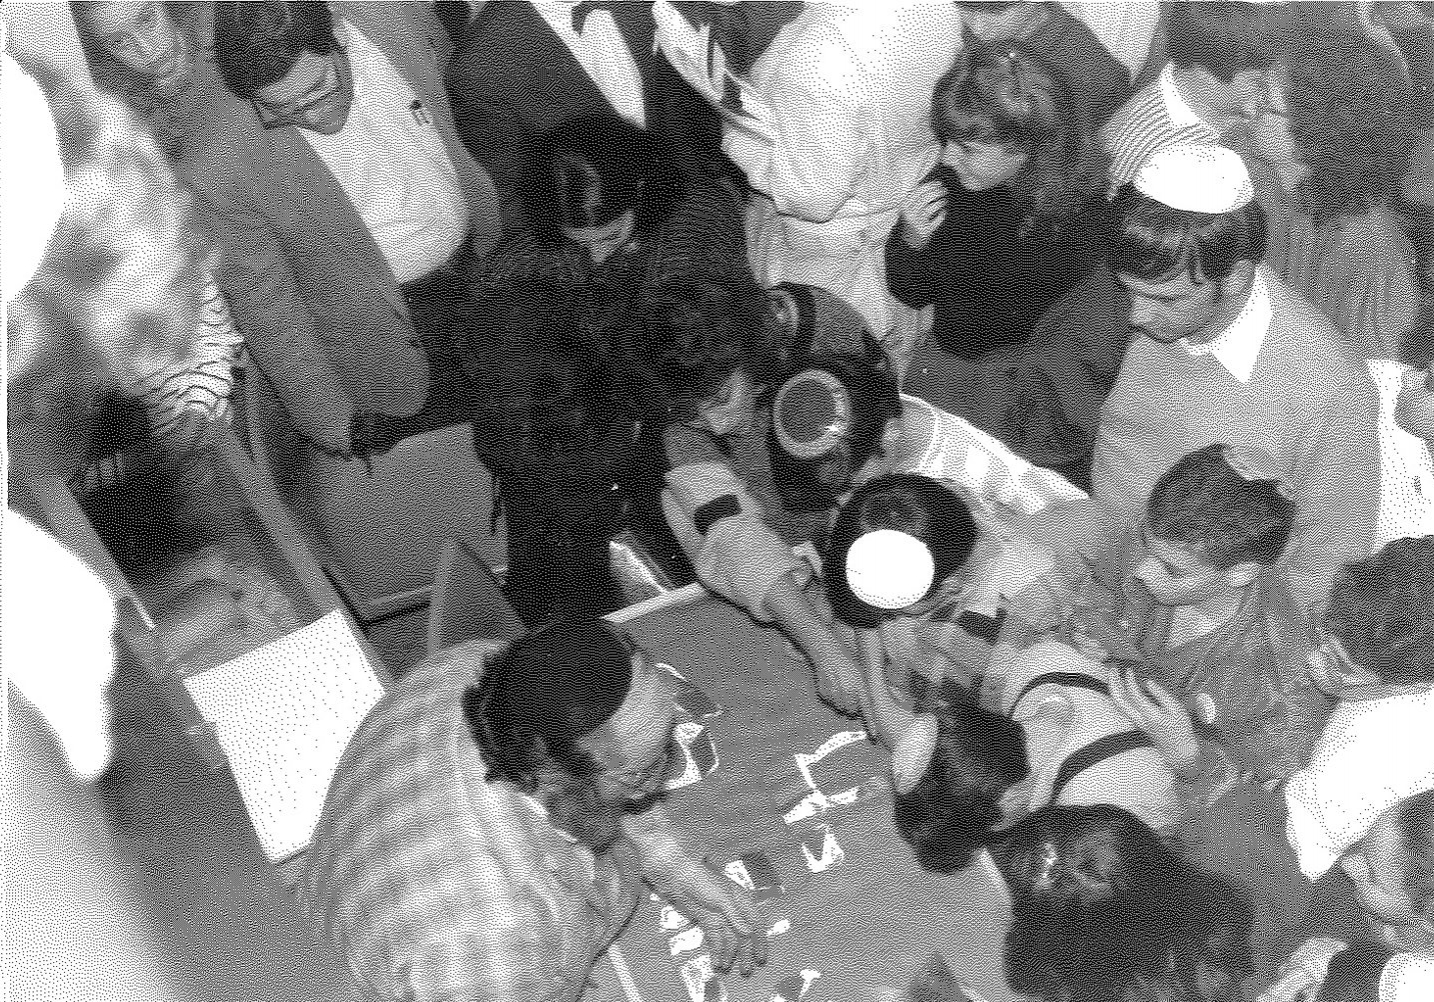 Rabbi Nulman (center) surrounded by students placing shards of stained glass into the mosaic. The Am Yisrael Chai mosaic still hangs in the SAR Academy building, 30 years later.